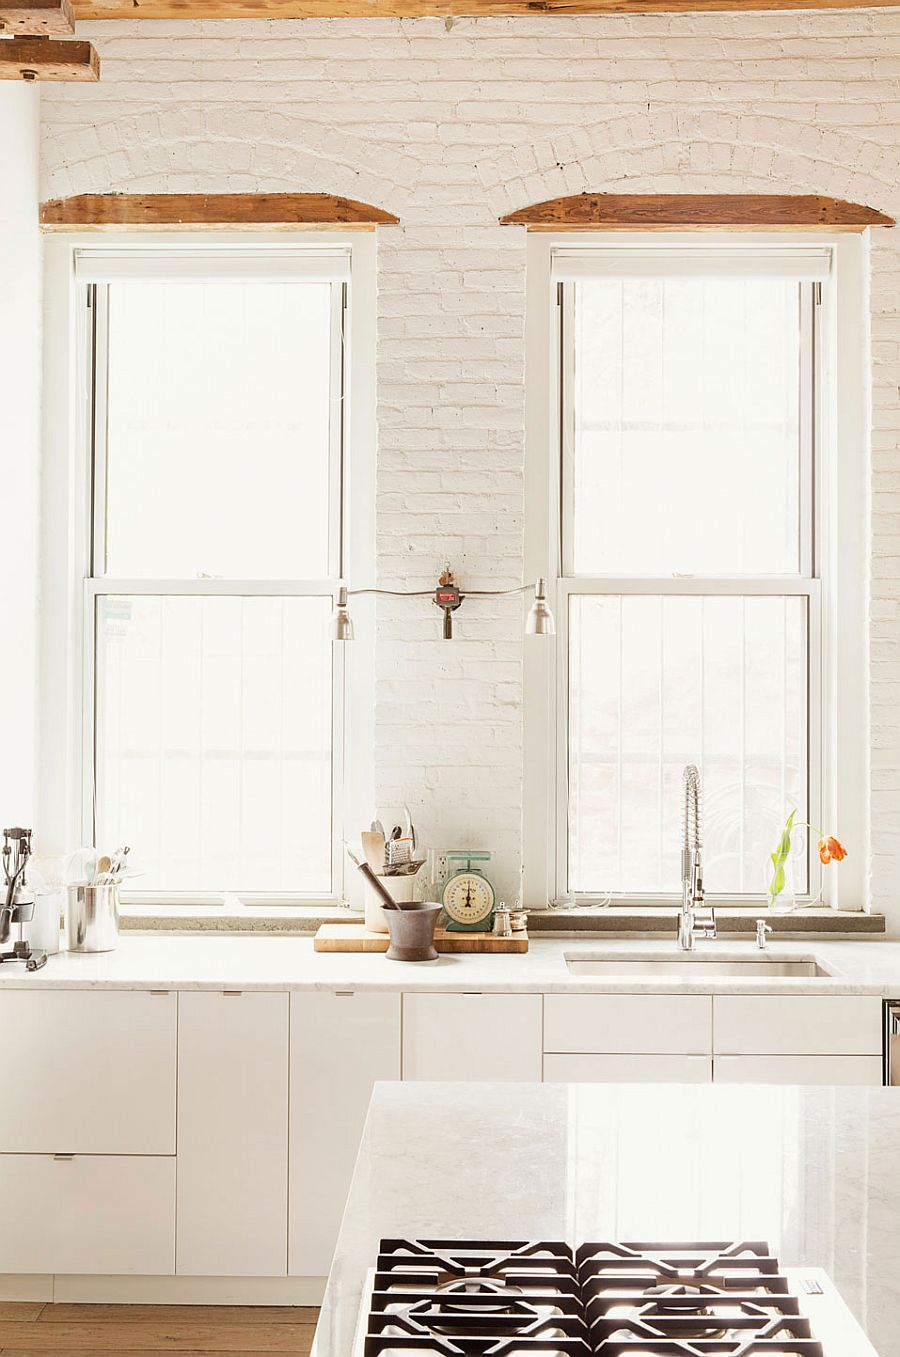 Kitchen in white with exposed brick walls and large windows